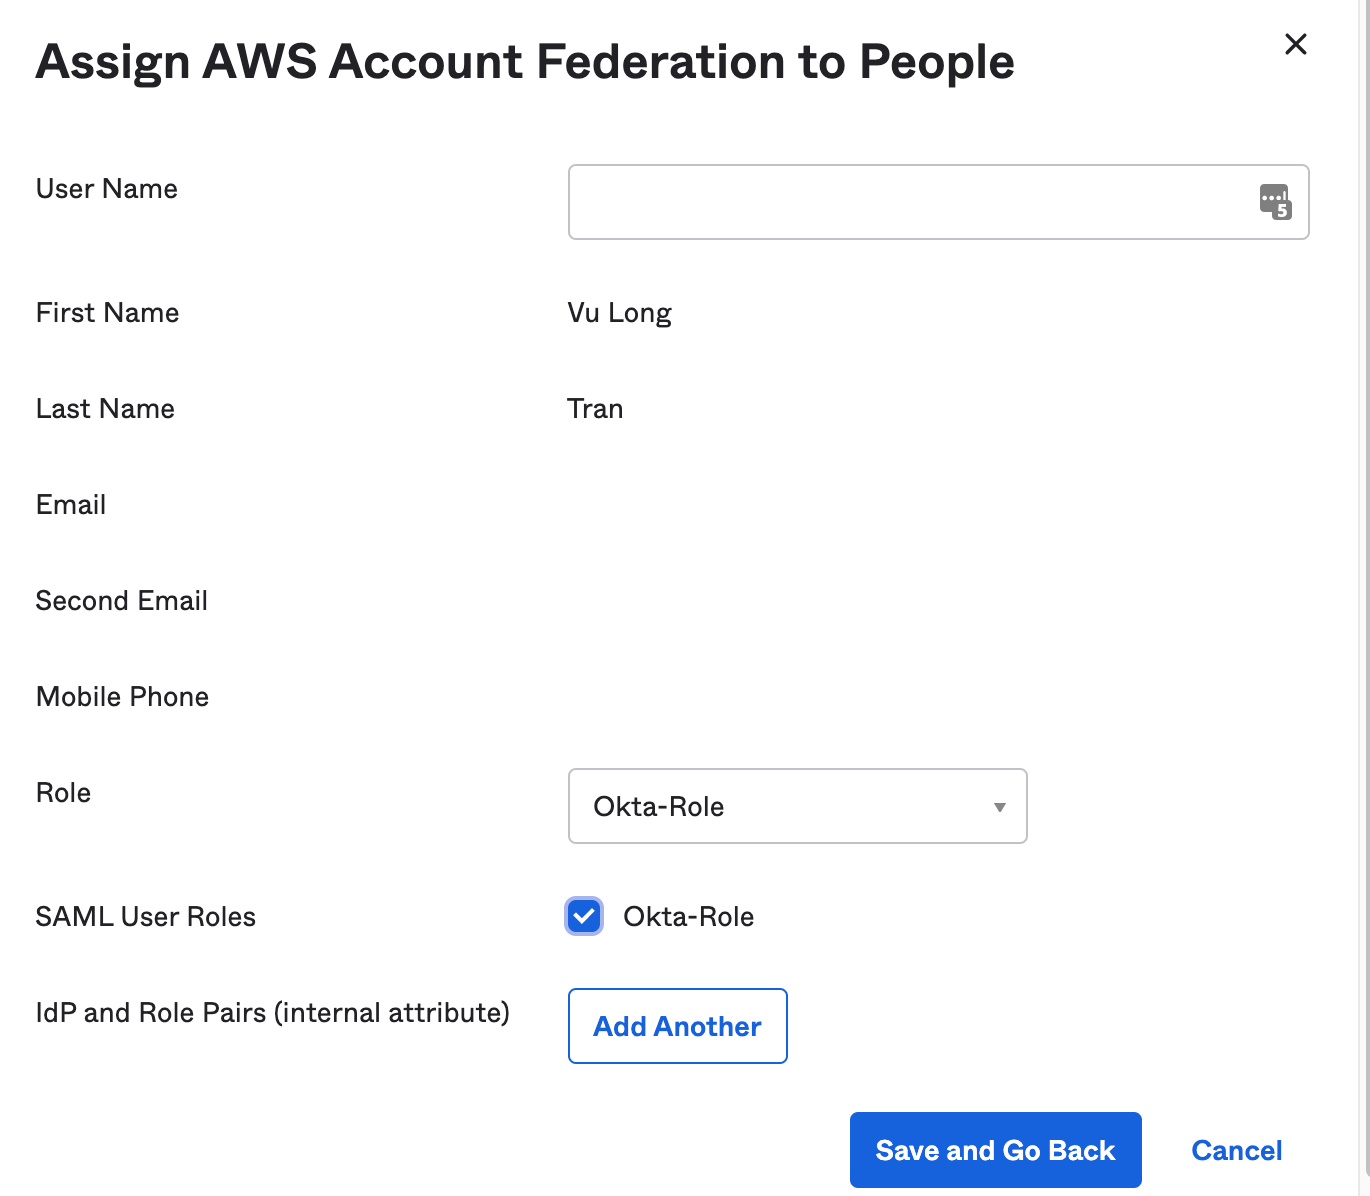 aws-assign-to-people2